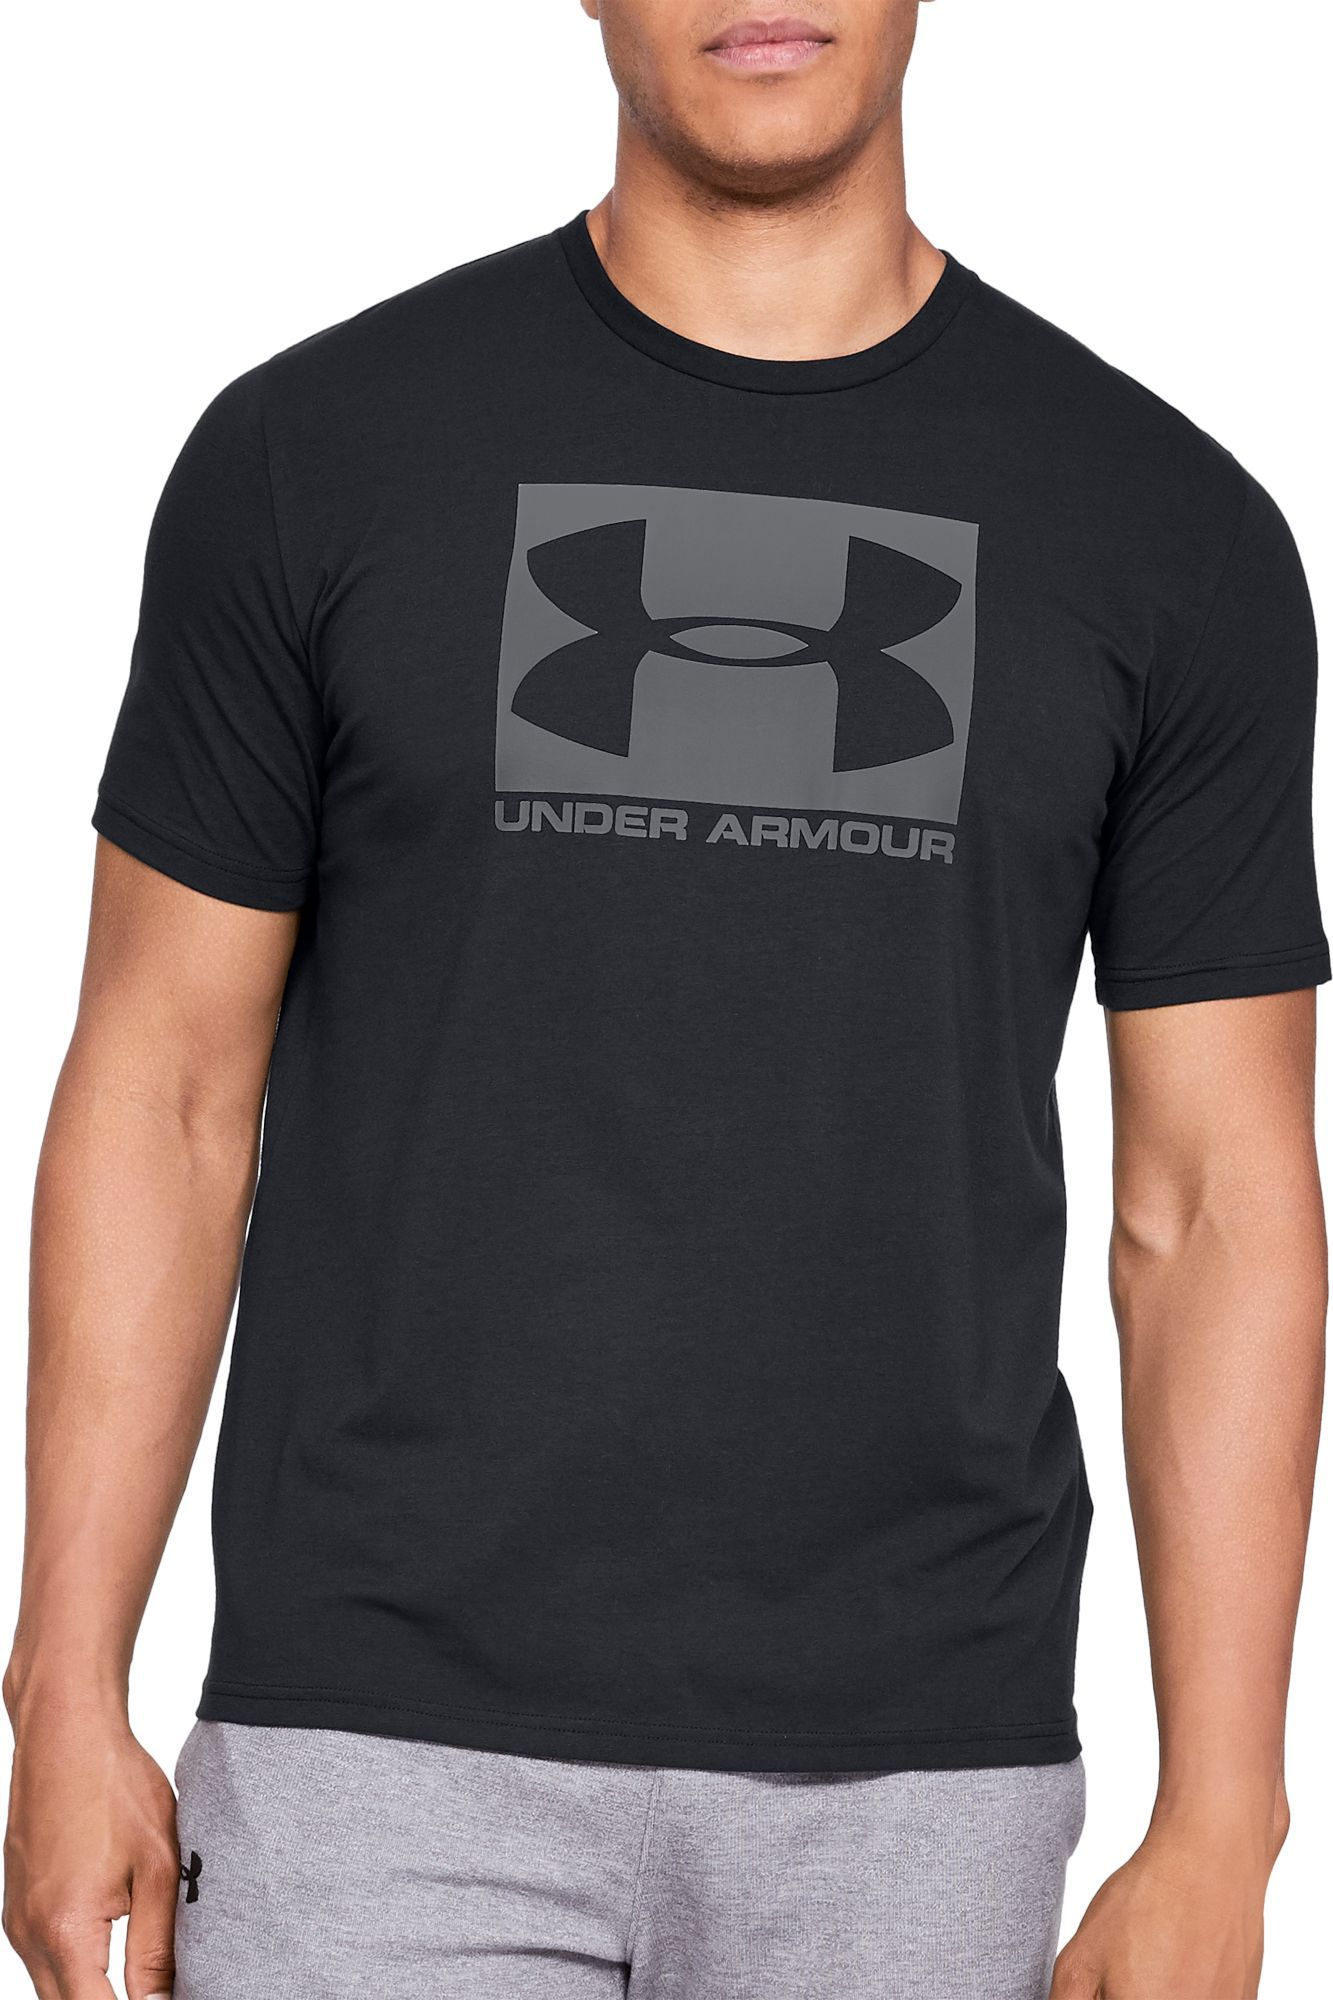 77c7f9894 Under Armour Men's Boxed Sportstyle Graphic T-Shirt in 2019 ...